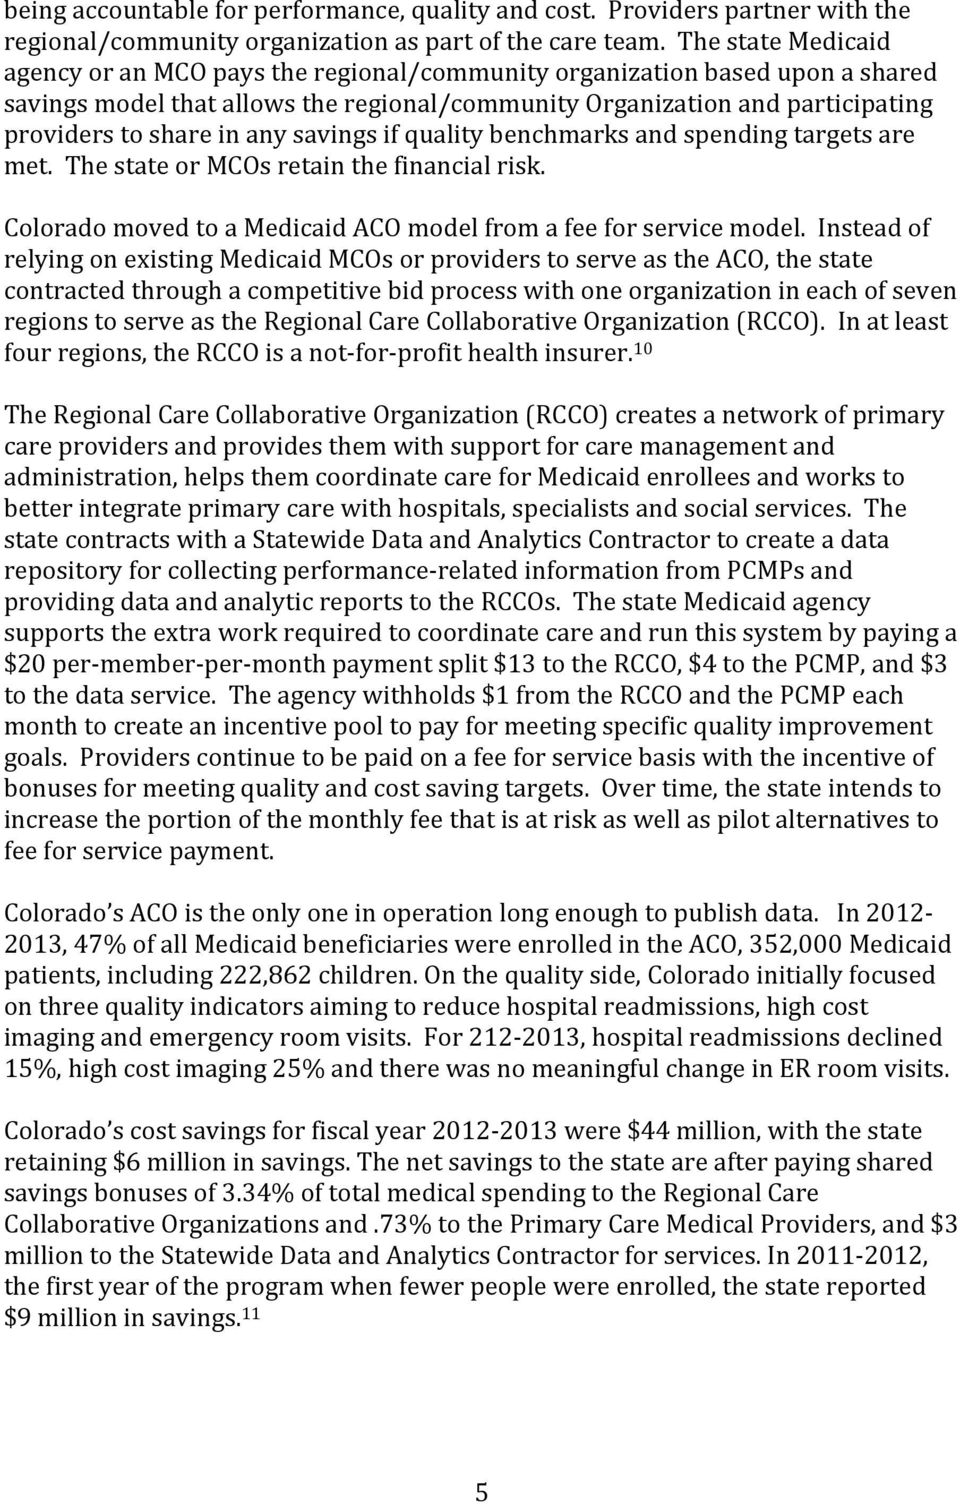 any savings if quality benchmarks and spending targets are met. The state or MCOs retain the financial risk. Colorado moved to a Medicaid ACO model from a fee for service model.